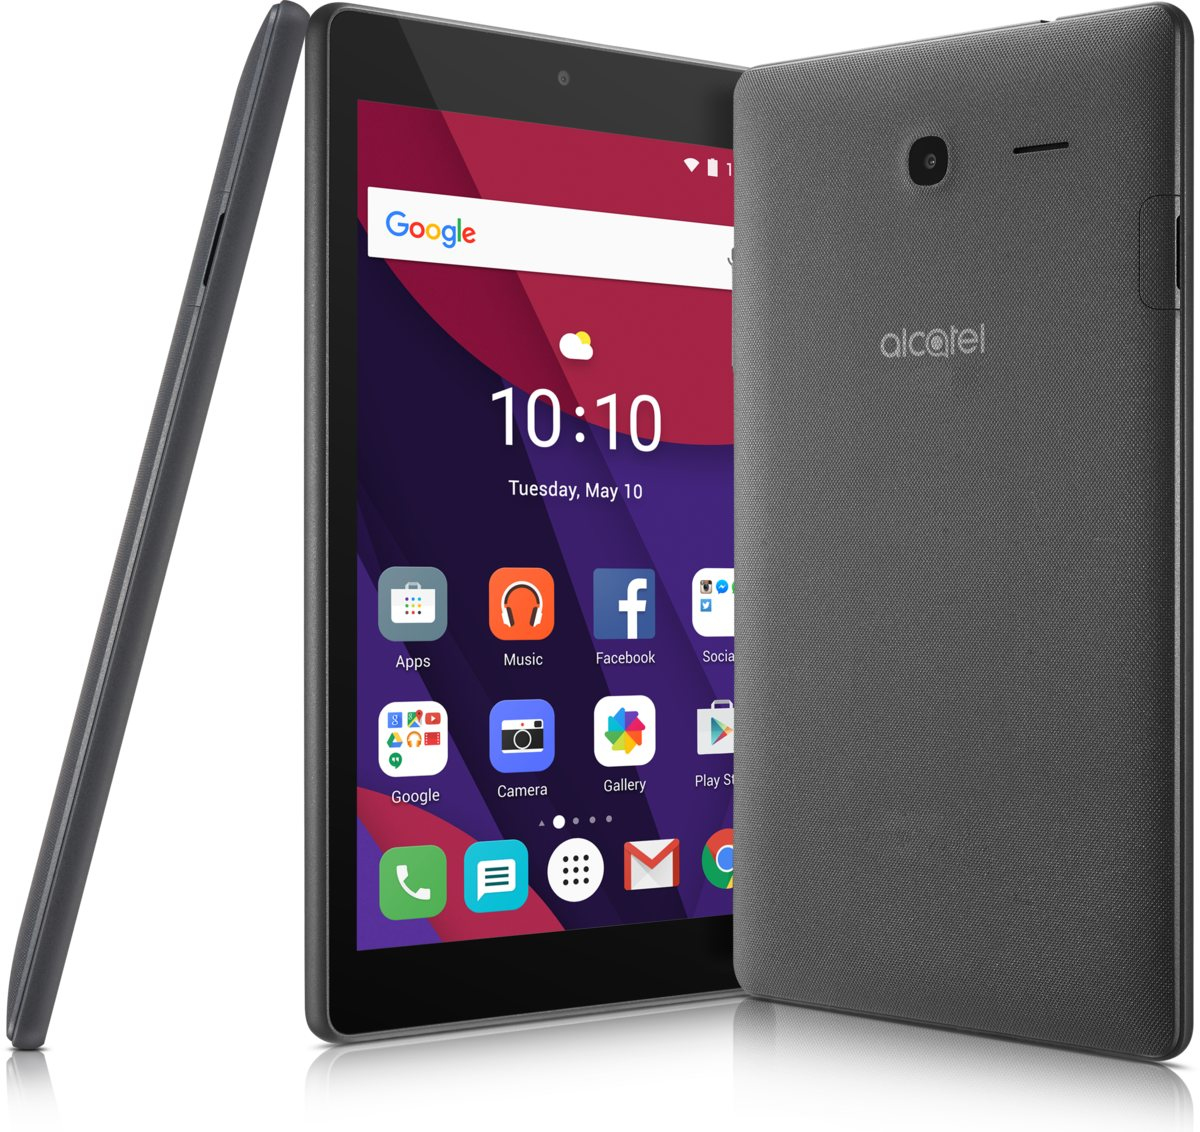 ALCATEL 8063-3CALGB1 ONE TOUCH PIXI 4 TABLET MEDIATEK MT8321 8 GB GREY